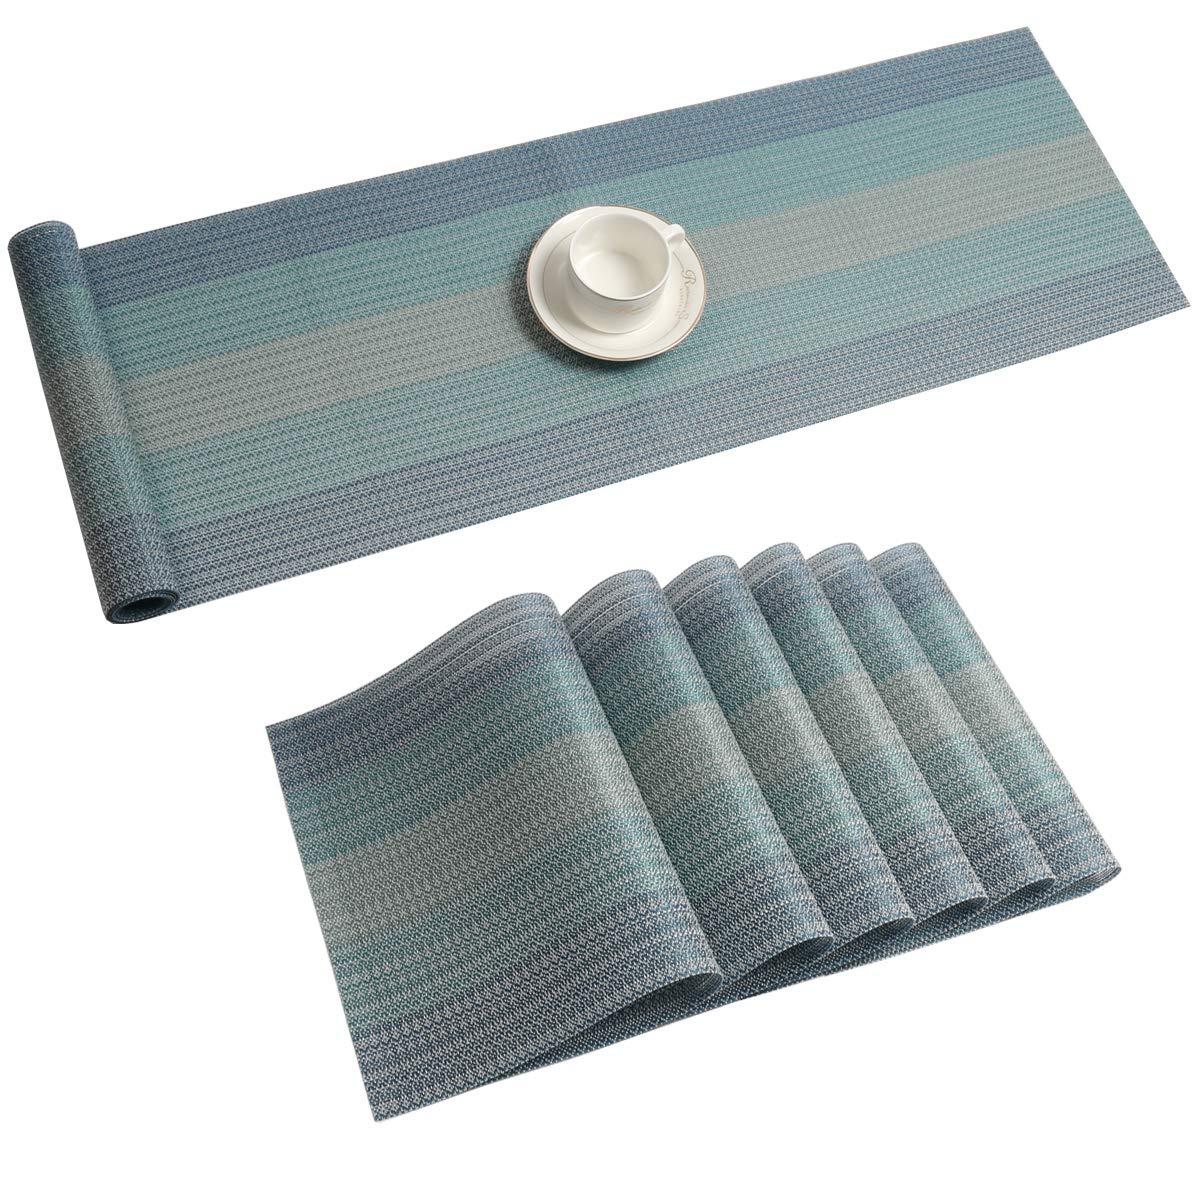 Table Runner Set Washable Heat